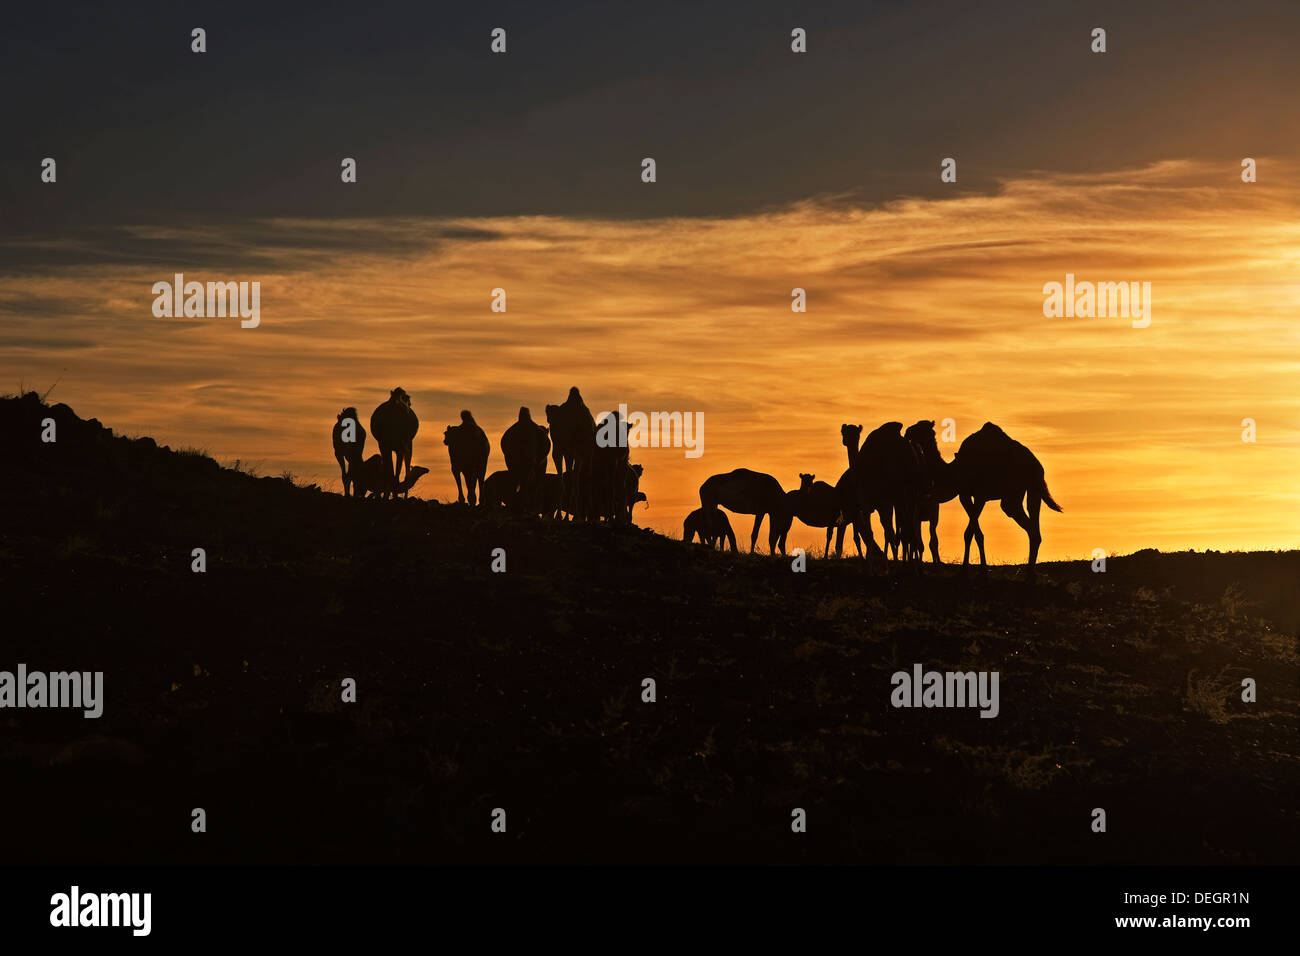 Silhouette of wild herd of dromedary camels on granite rock outcrop at sunrise, Sahara Desert, Mauritania, NW Africa - Stock Image